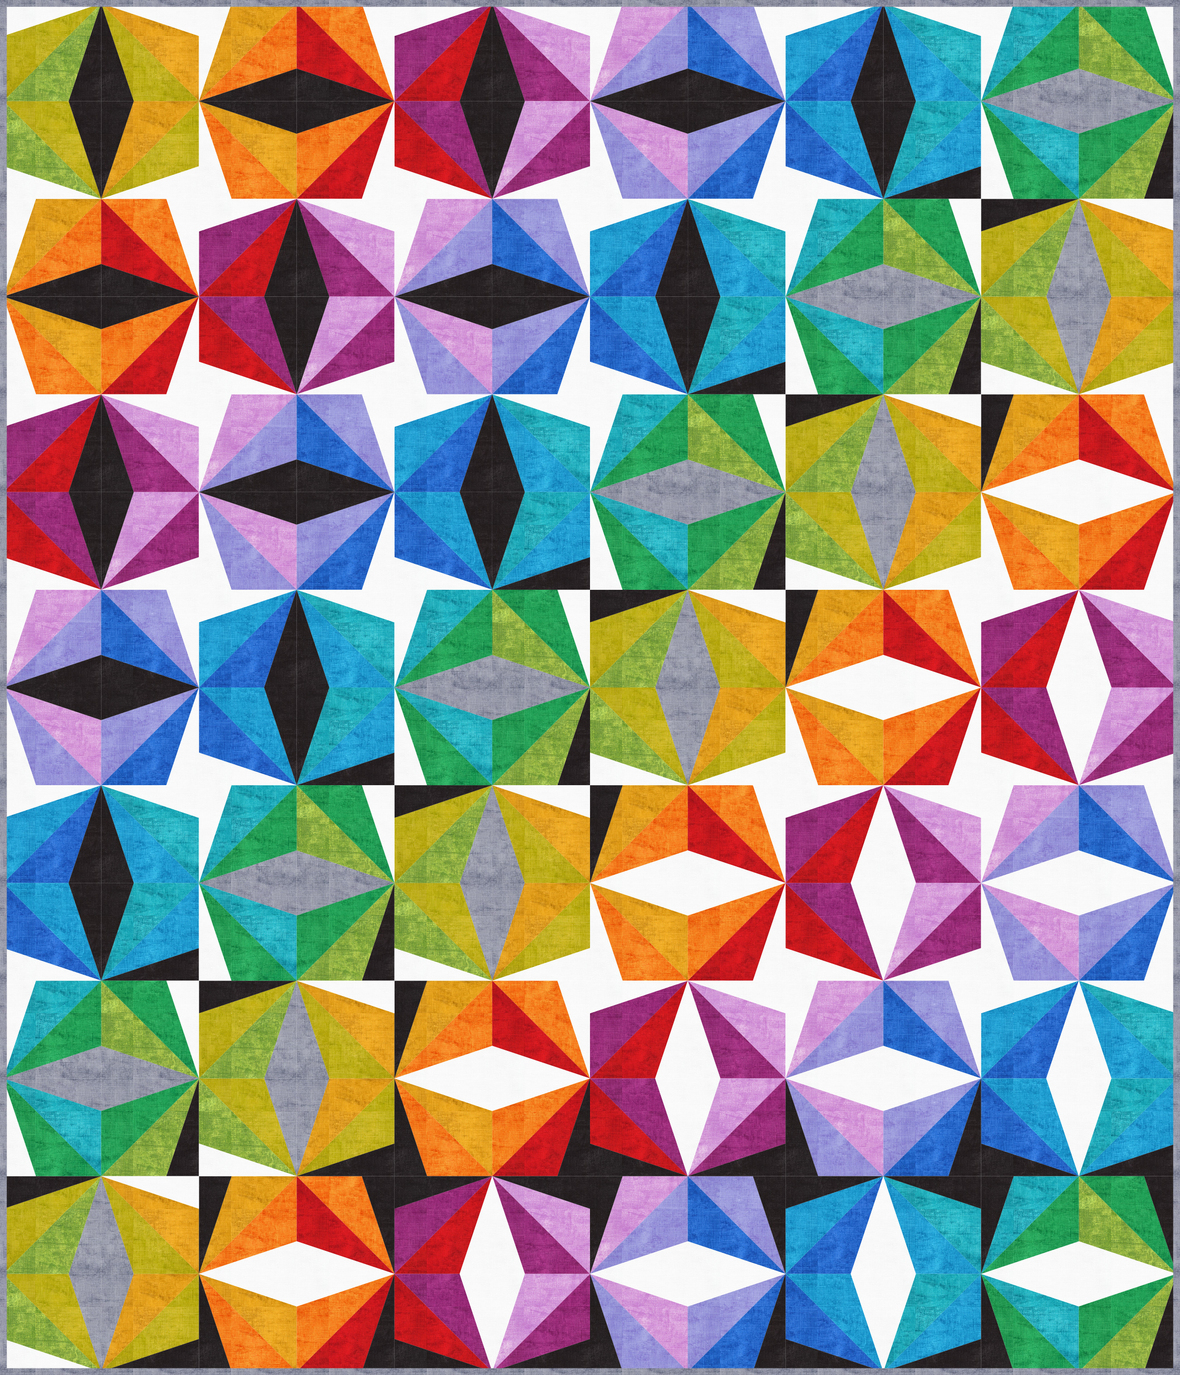 Chalk and Charcoal Prismatic pattern by Colourwerx